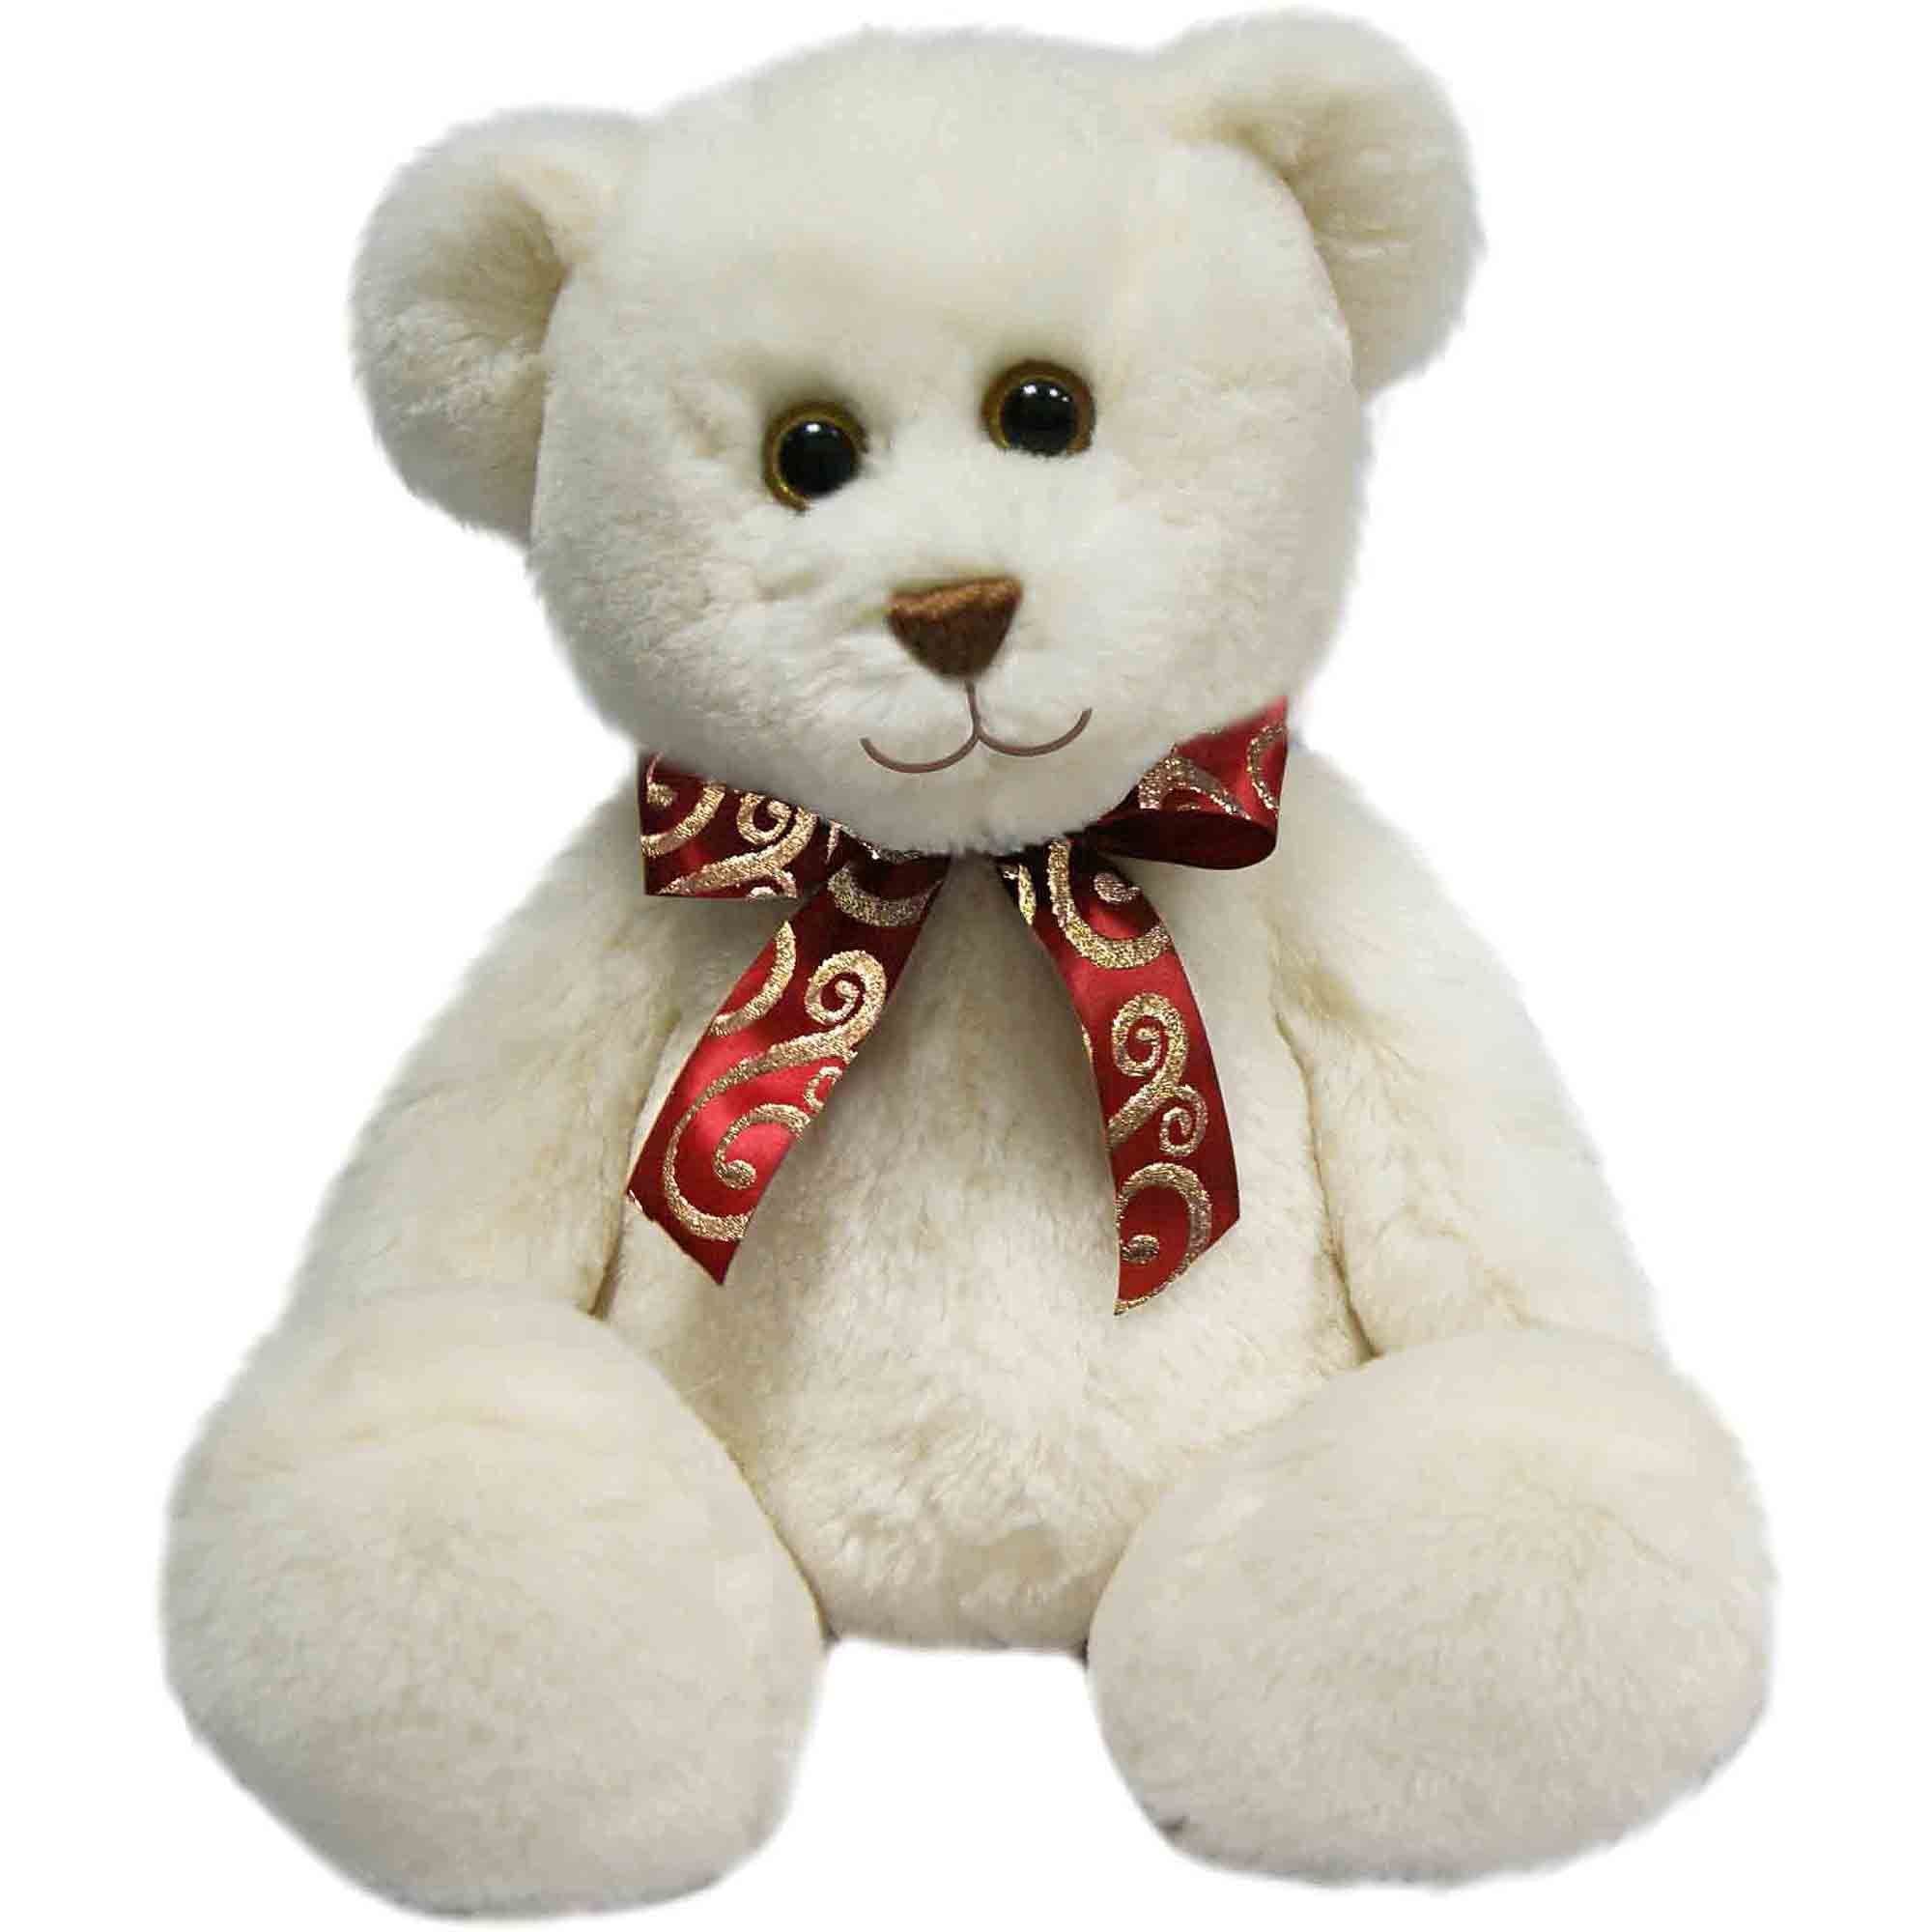 "First & Main Valentine's Day Scrumptious 10"" Plush"